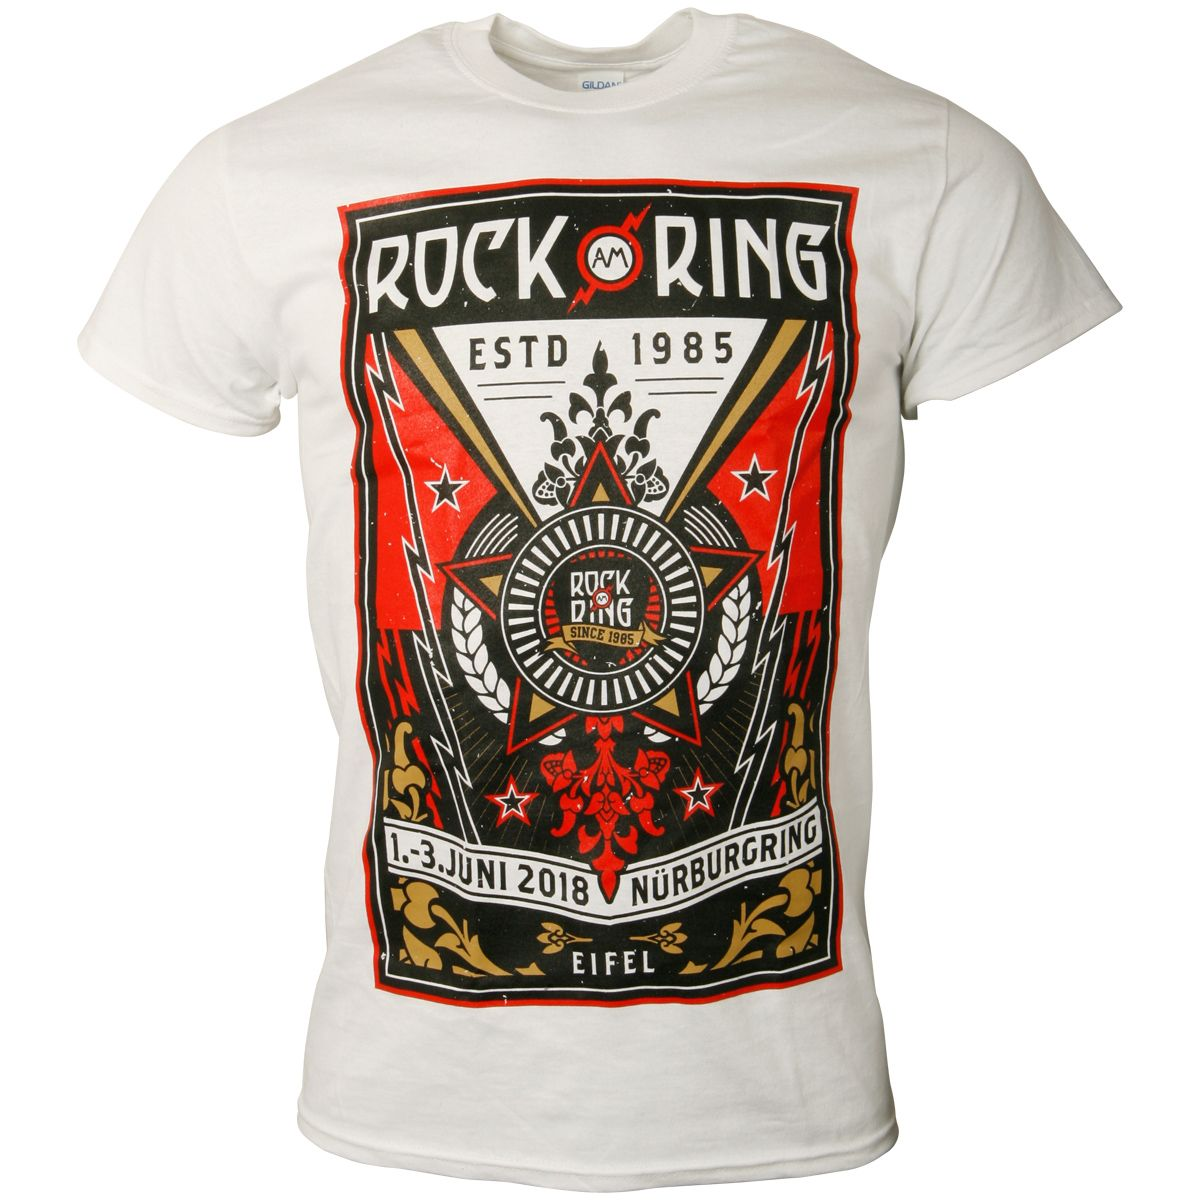 6c338a38 Official Limited Rock am Ring 2018 T-Shirt Rock Star Artwork - white |  ROCKnSHOP